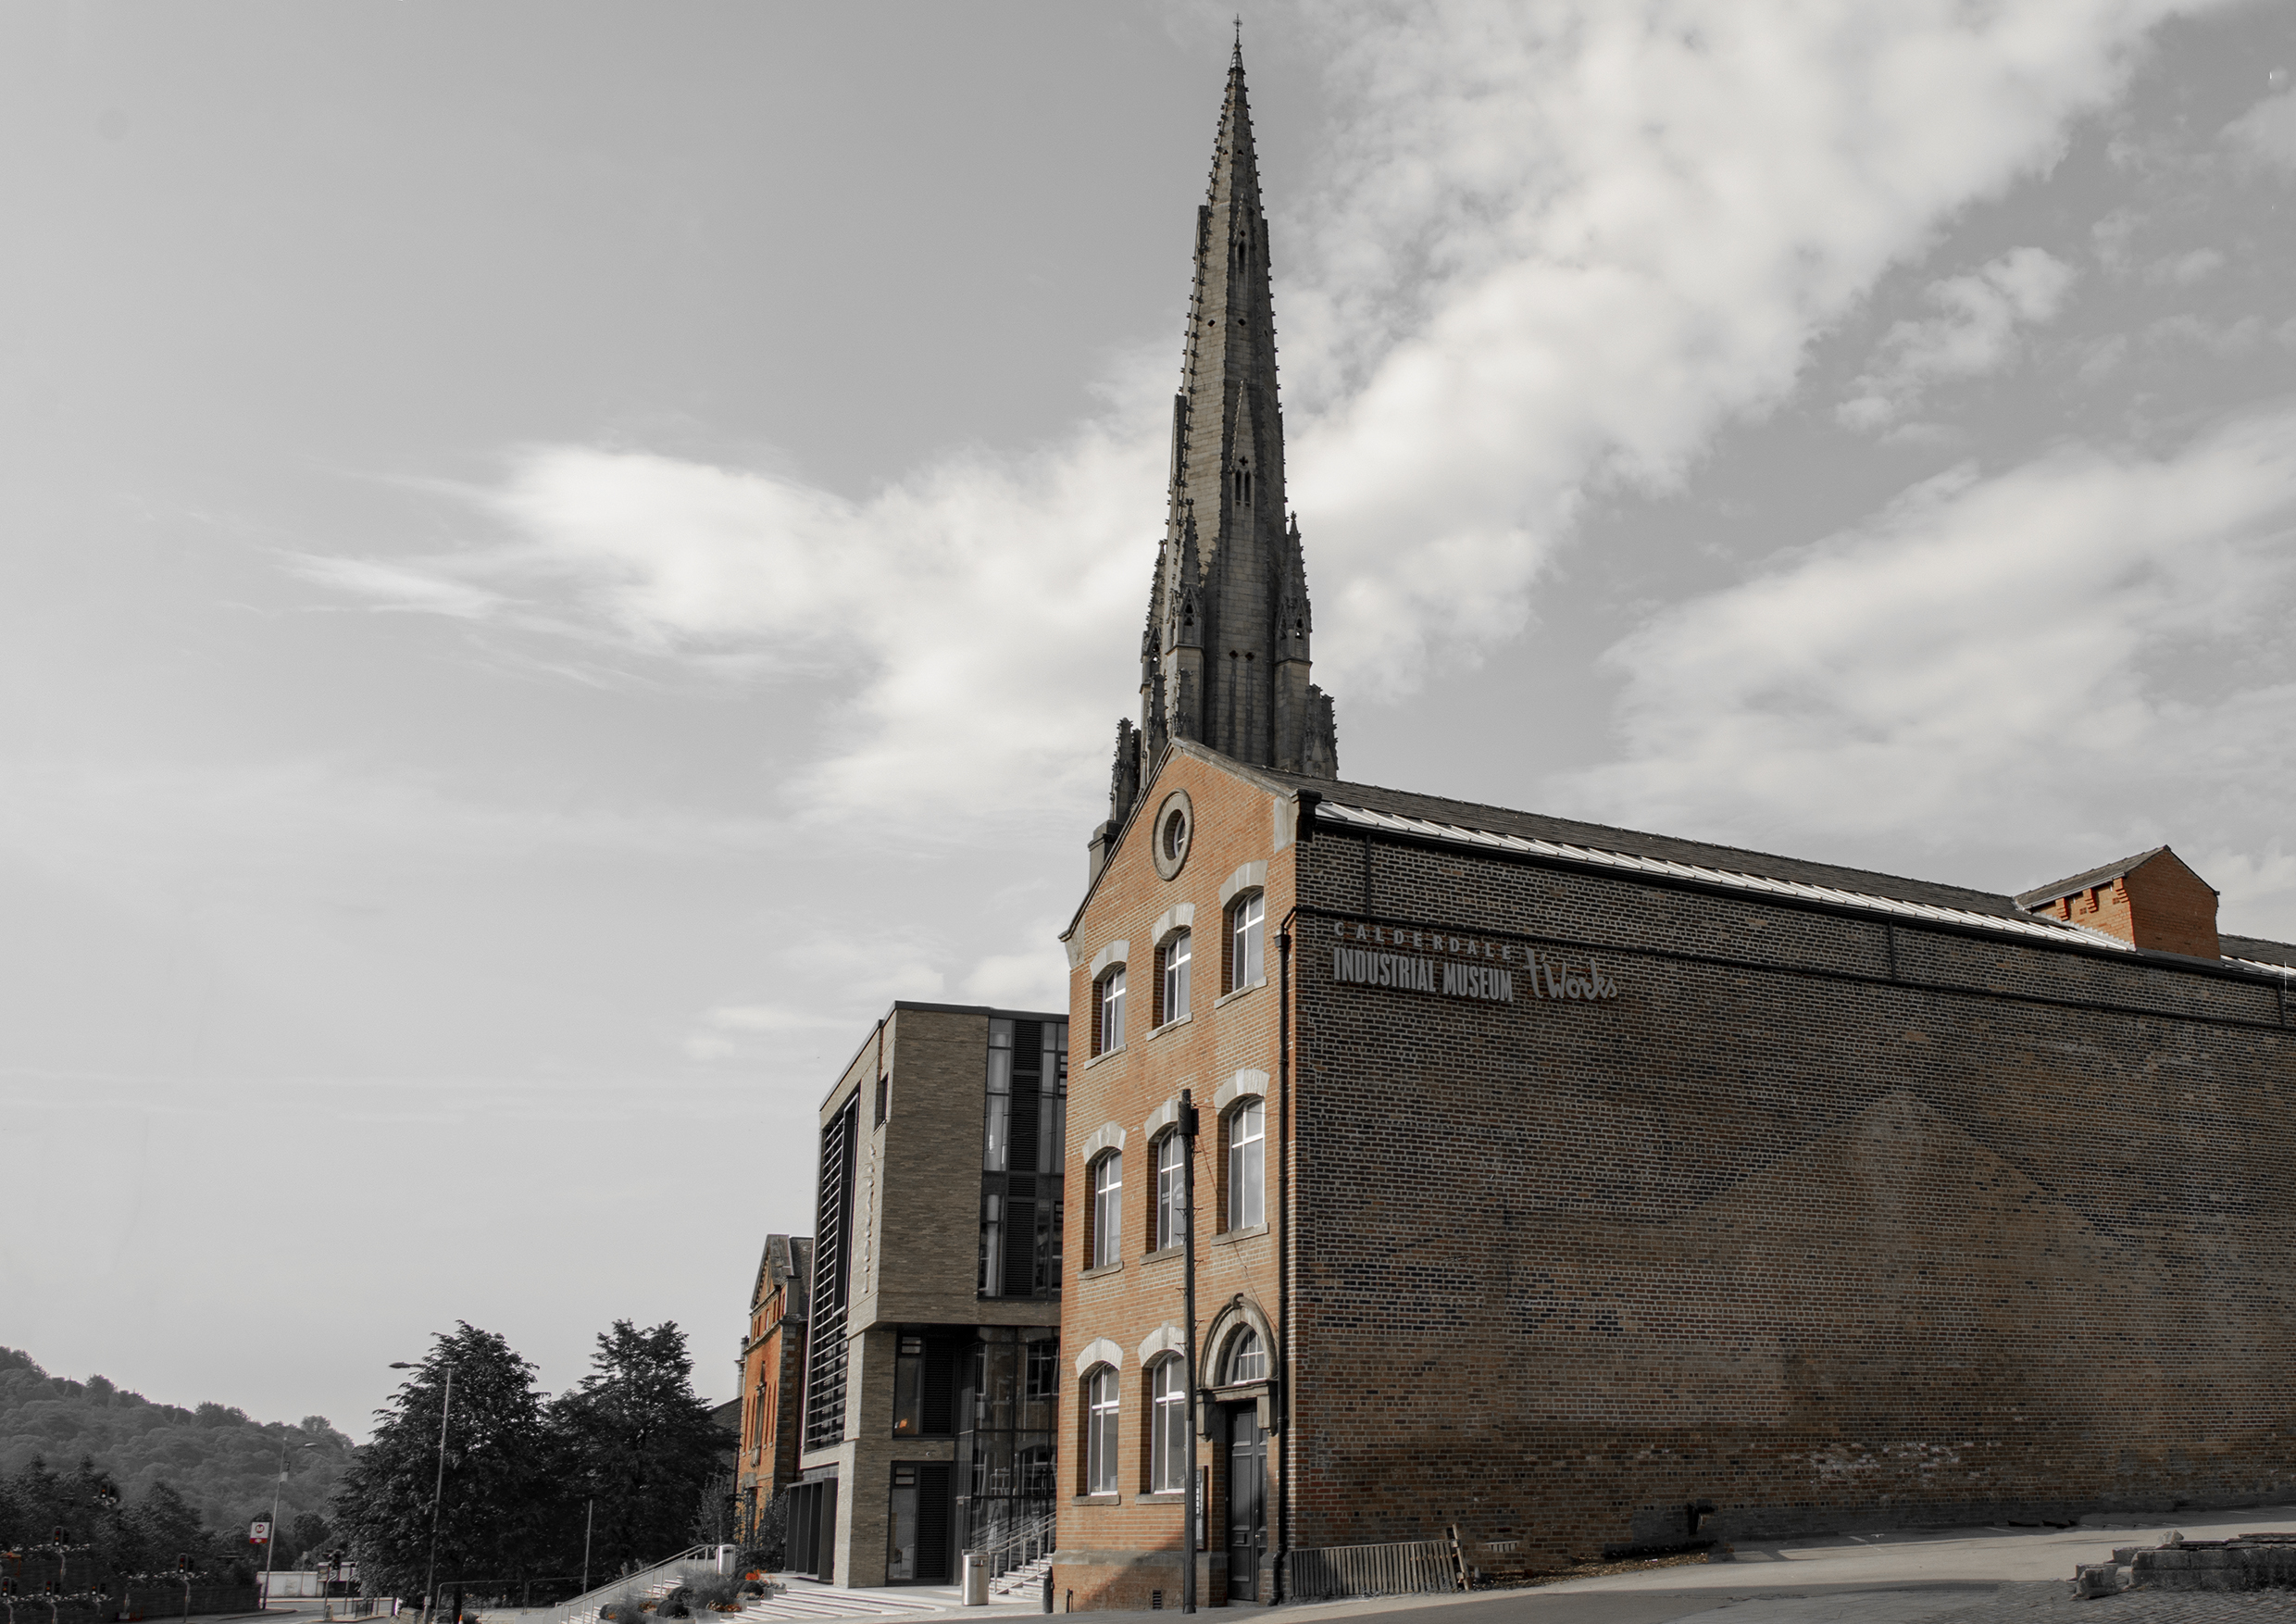 Calderdale Industrial Museum, Halifax Library and Square Church Spire